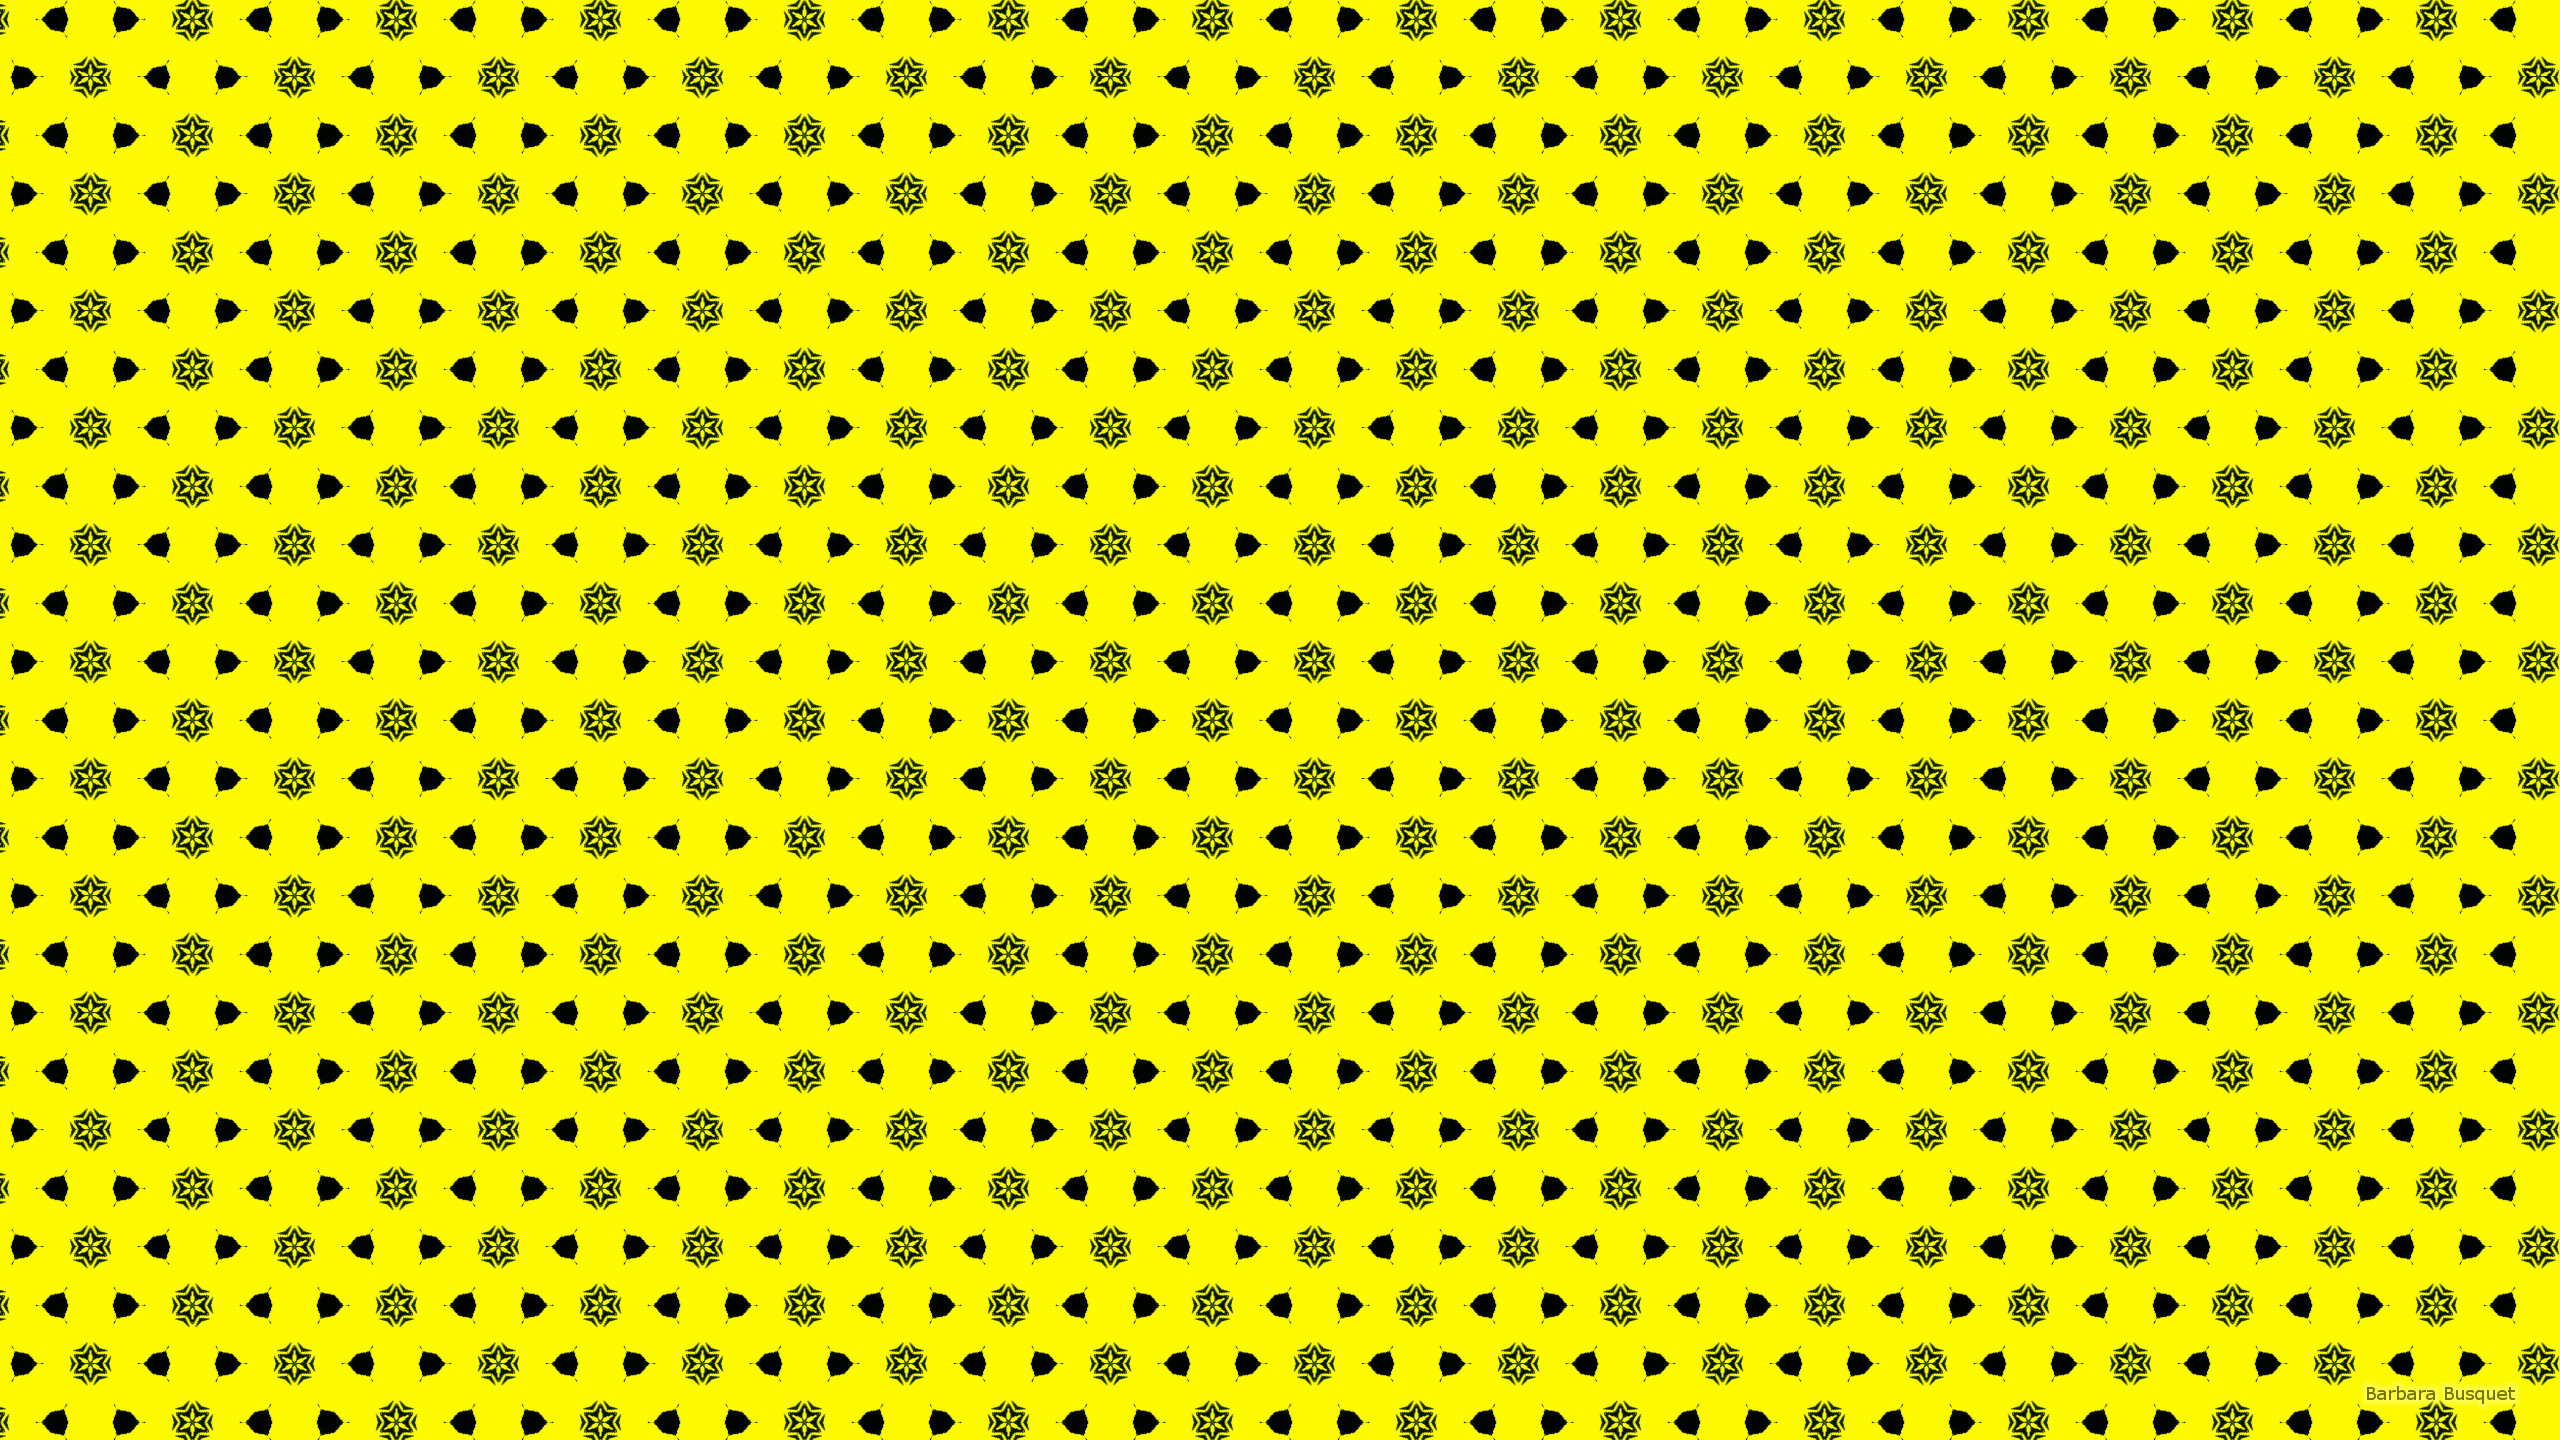 2560x1440 Yellow wallpaper with black shapes